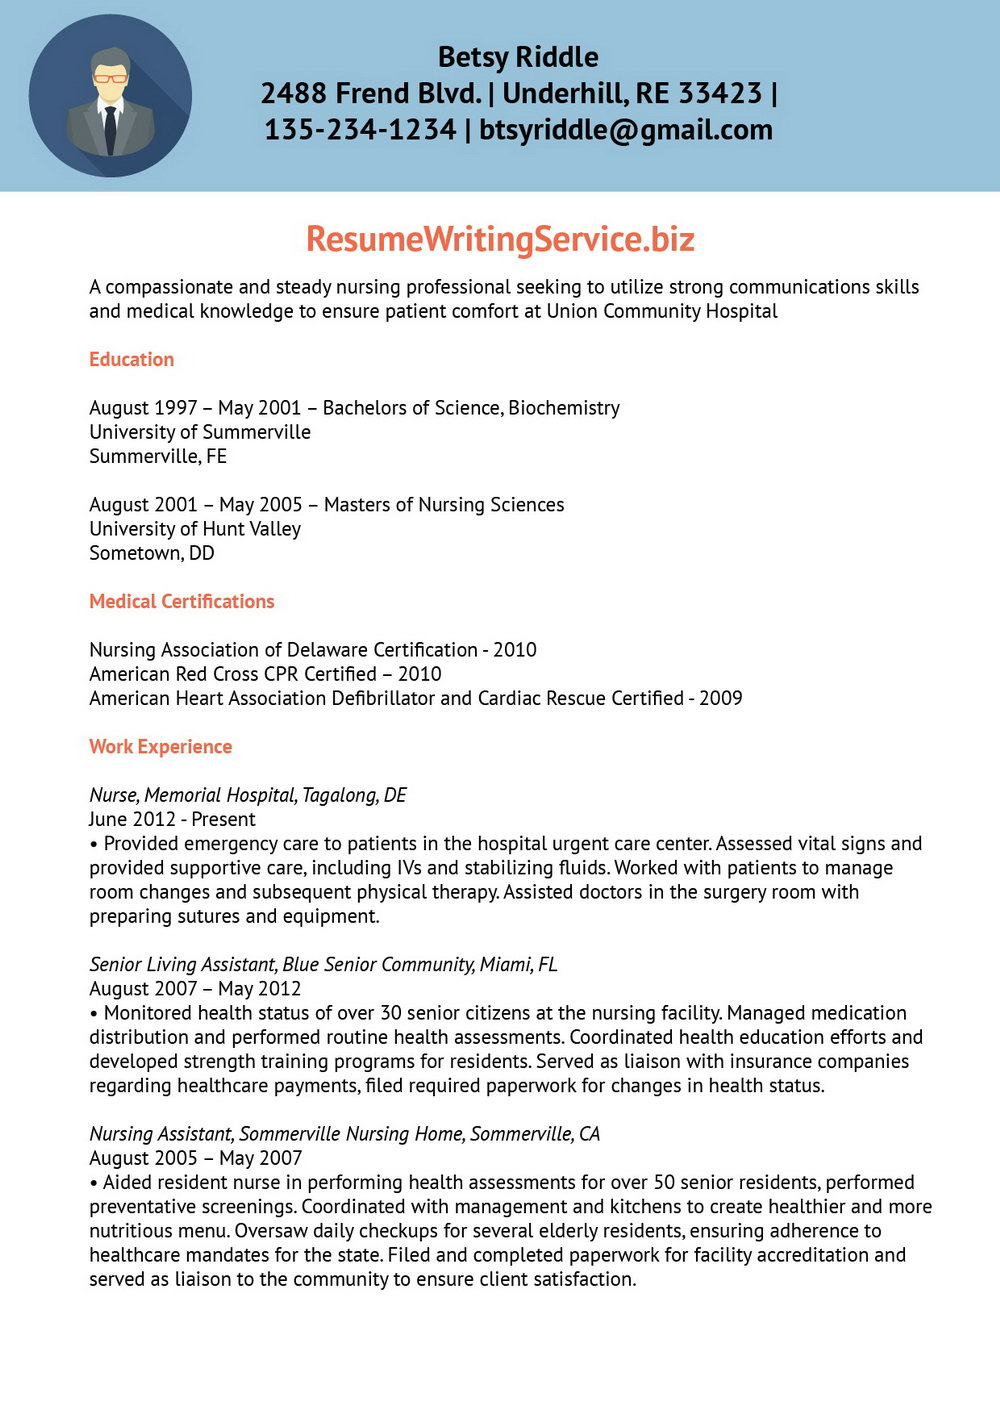 Resume Writing Services For Nurses